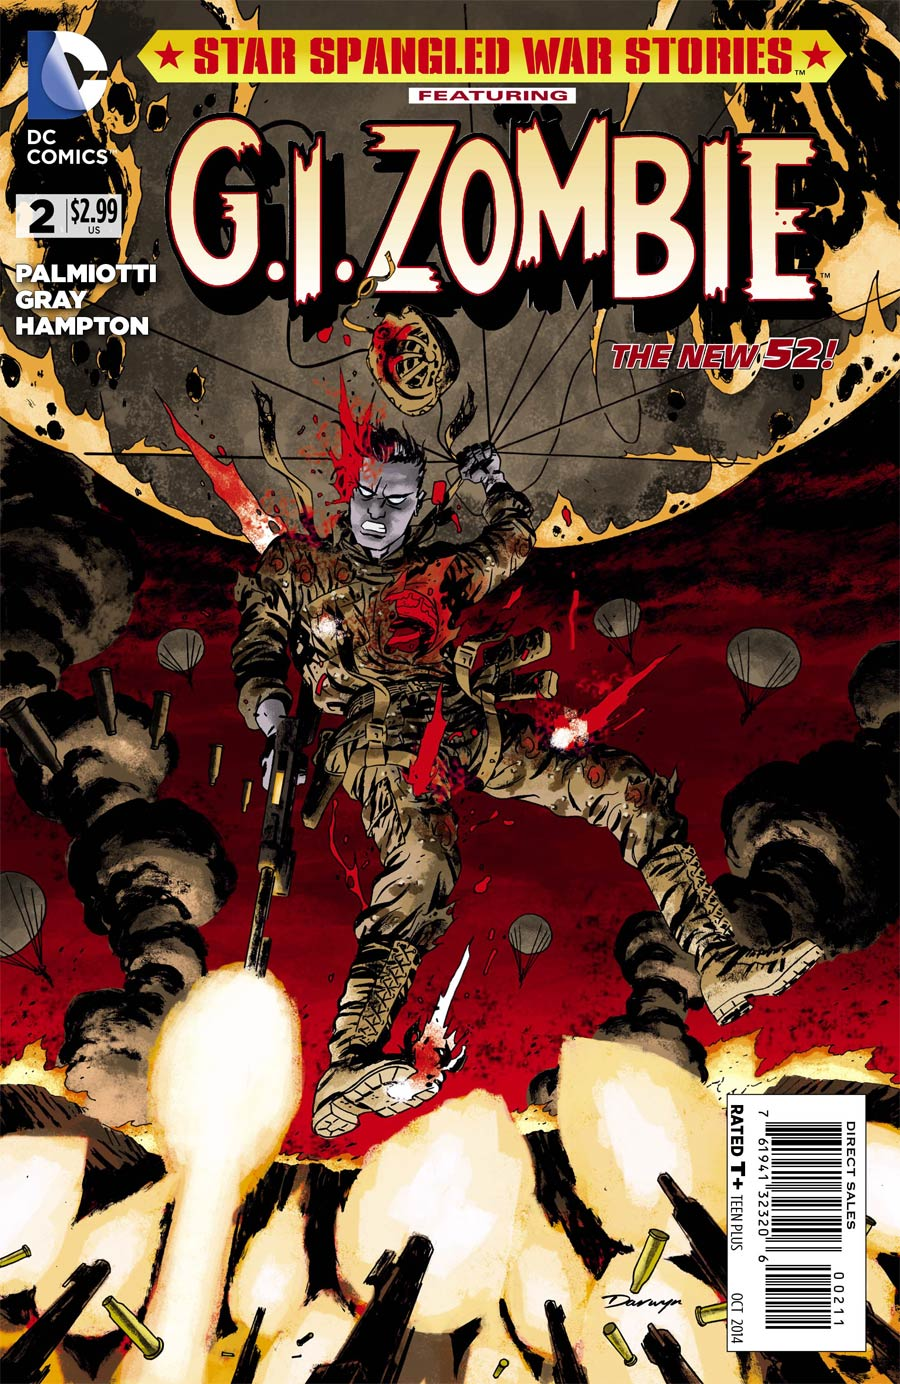 Star-Spangled War Stories Featuring GI Zombie #2 Cover A Regular Darwyn Cooke Cover